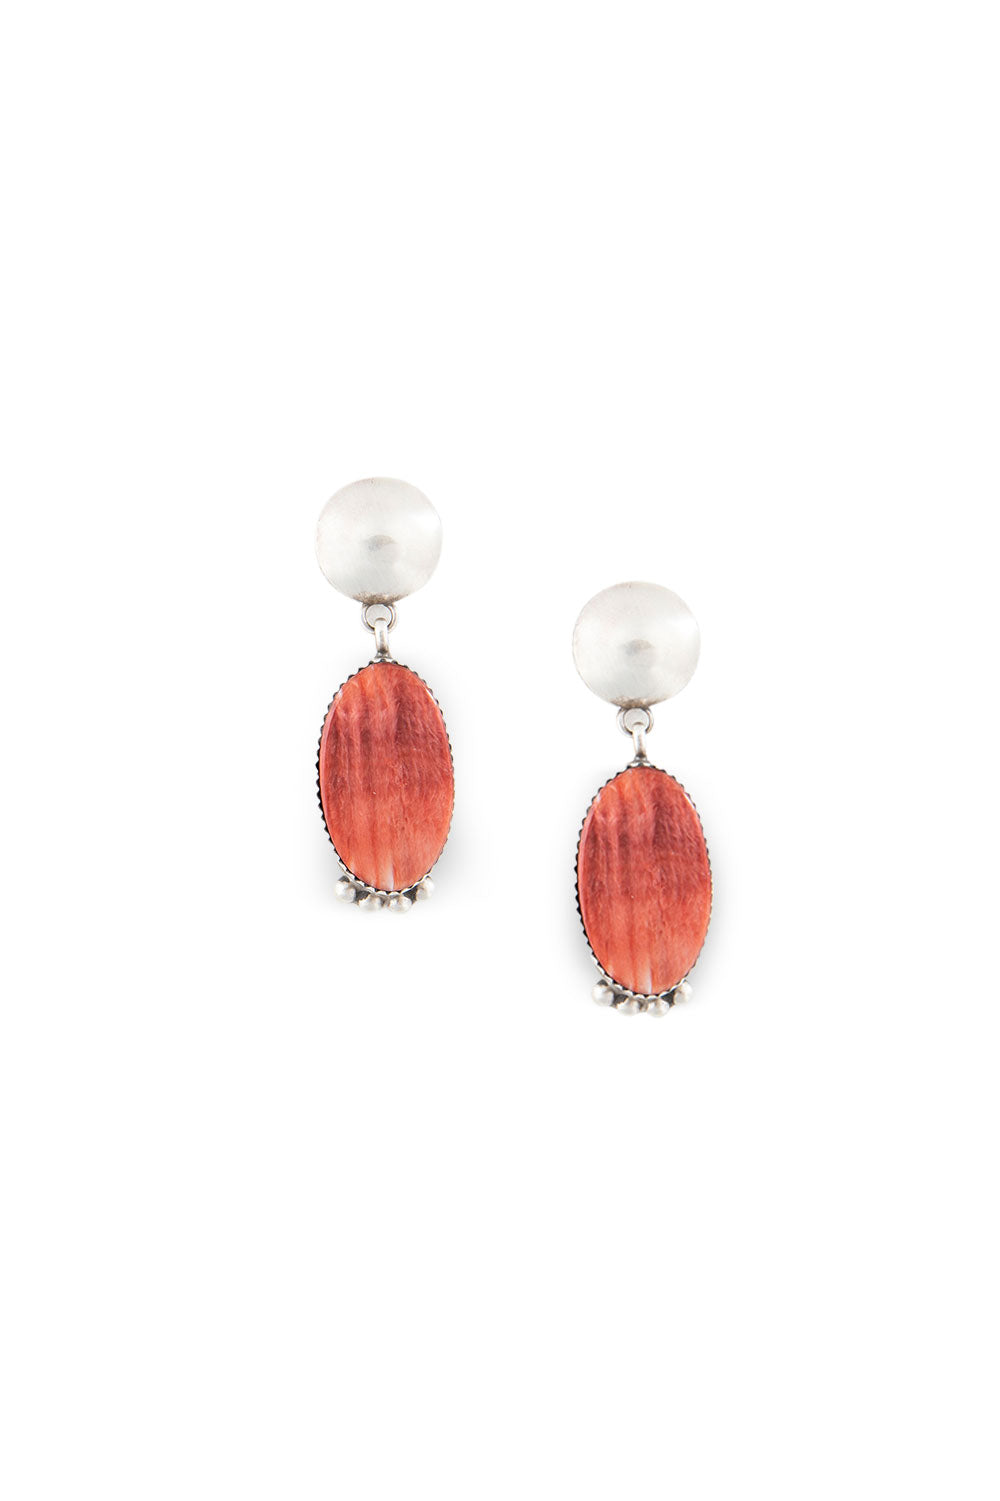 Earrings, Slab, Spiny Coral, Hallmark, 438